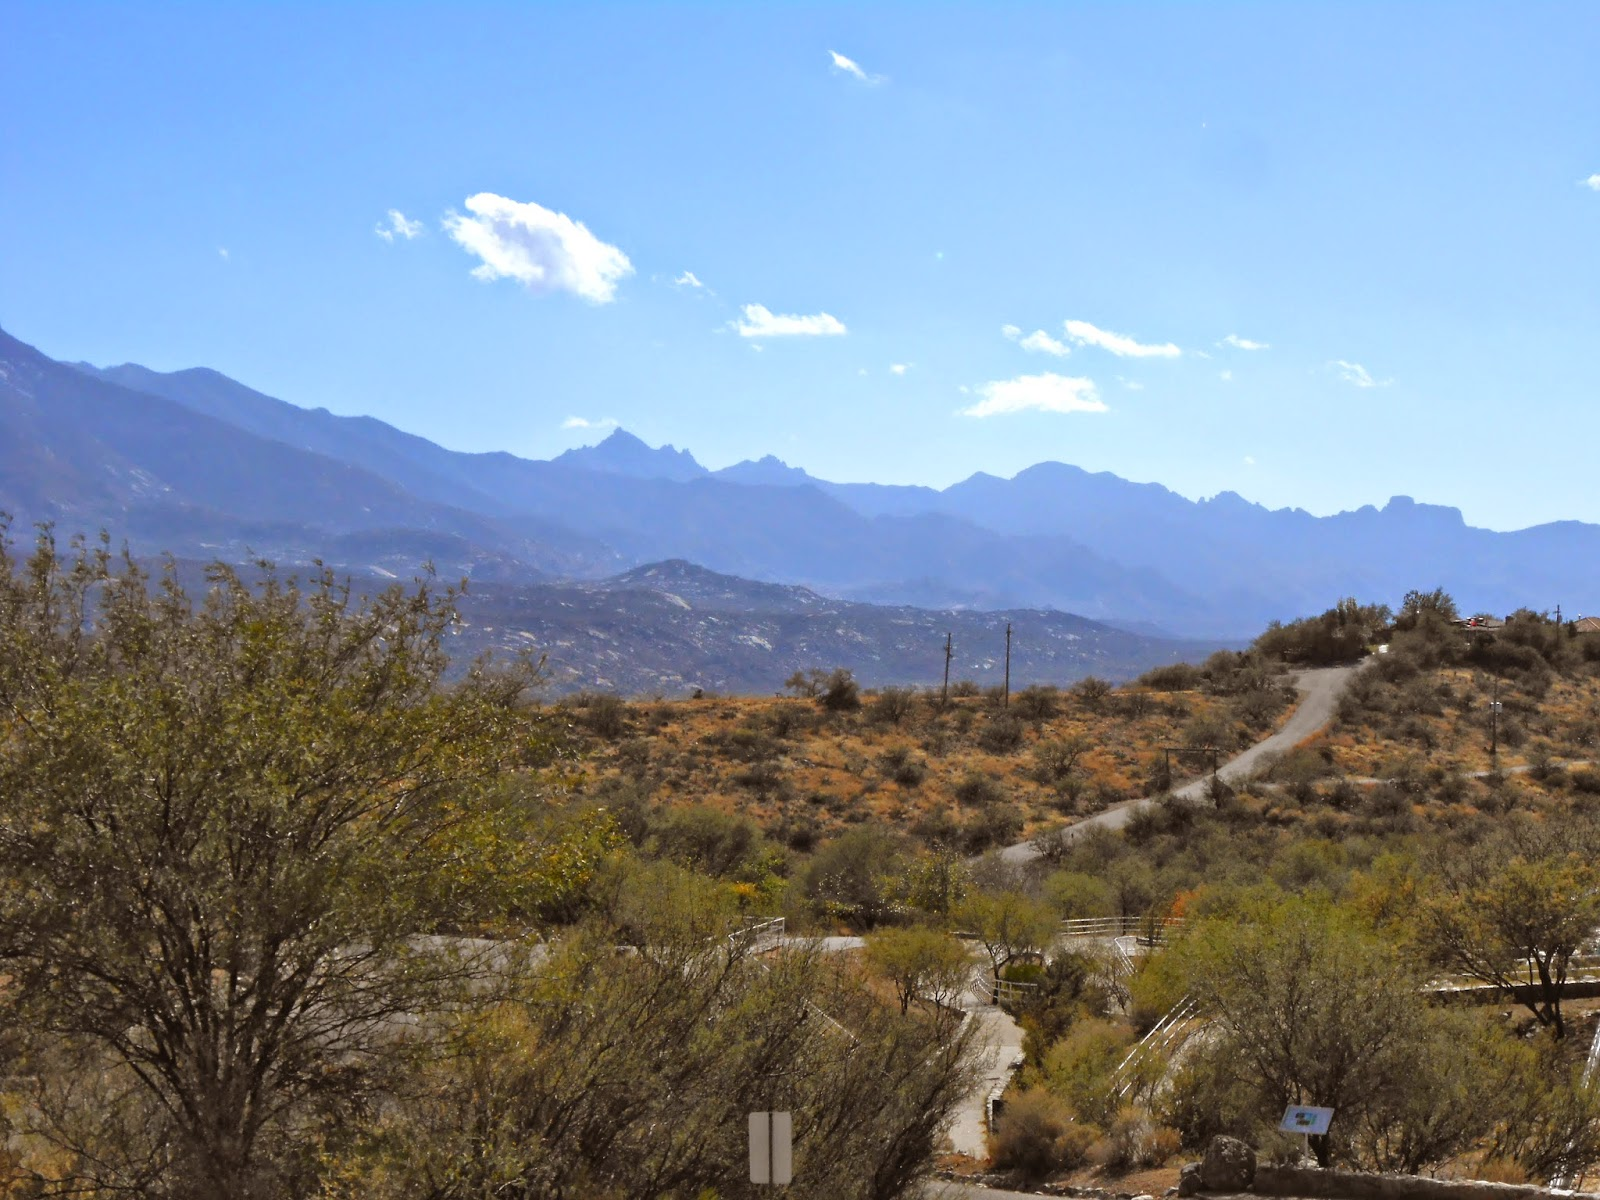 catalina mountain view from the biosphere attraction in oracle arizona